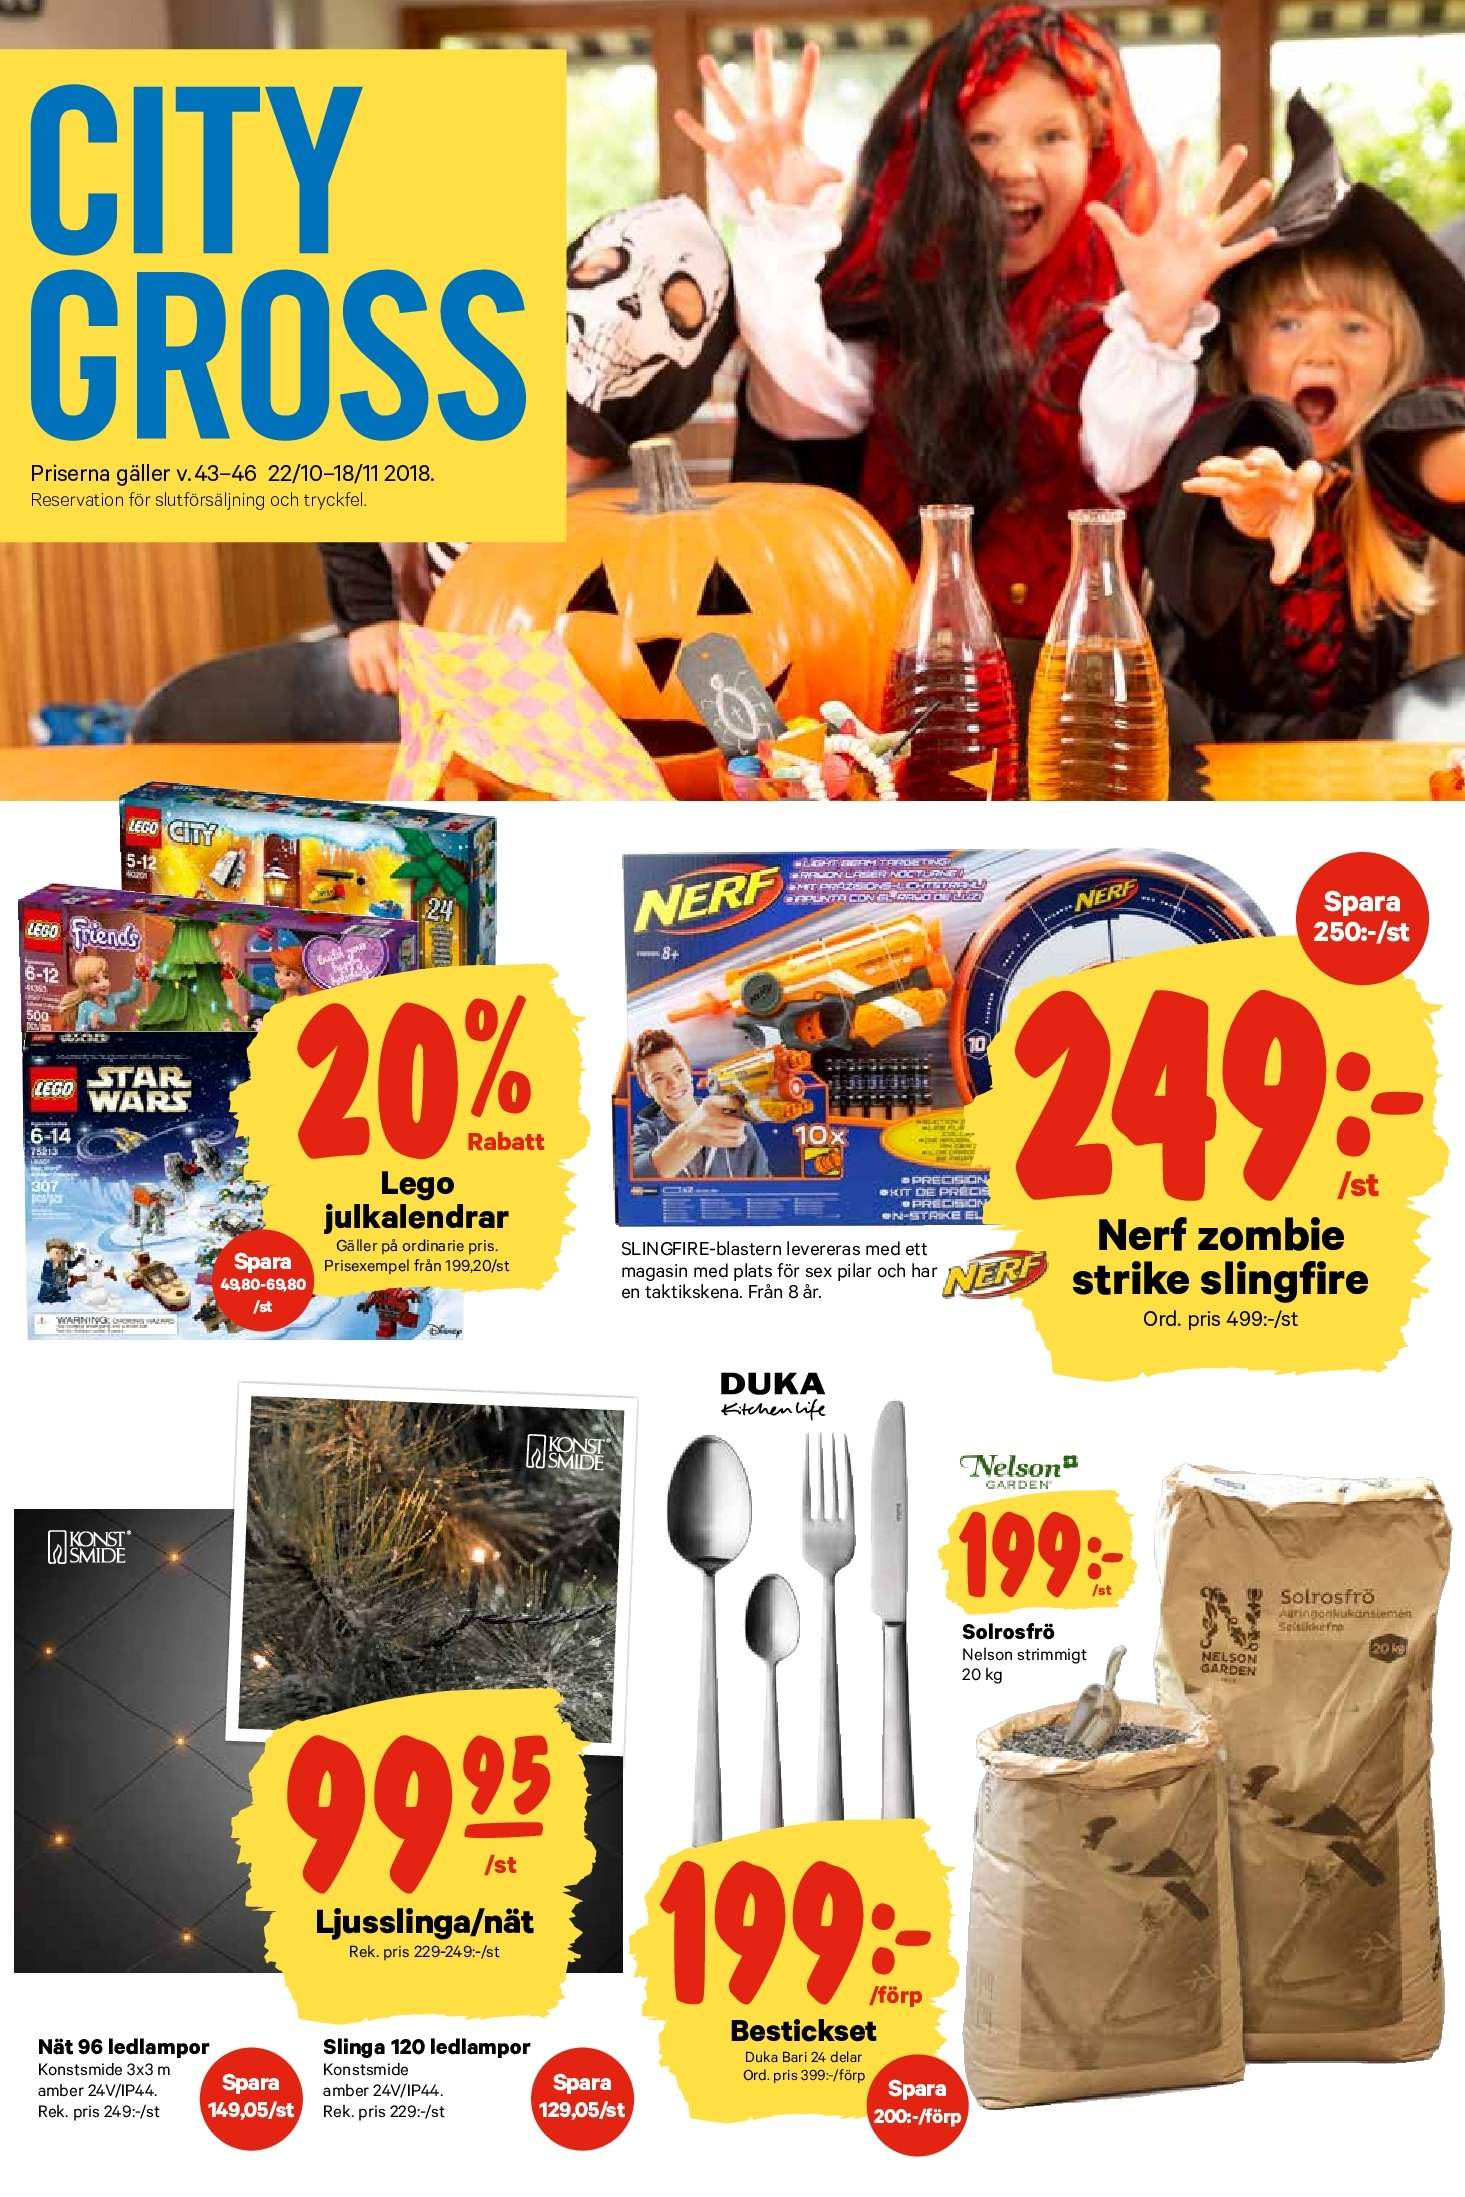 City Gross reklamblad - 22/10 2018 - 28/10 2018. Sida 16.